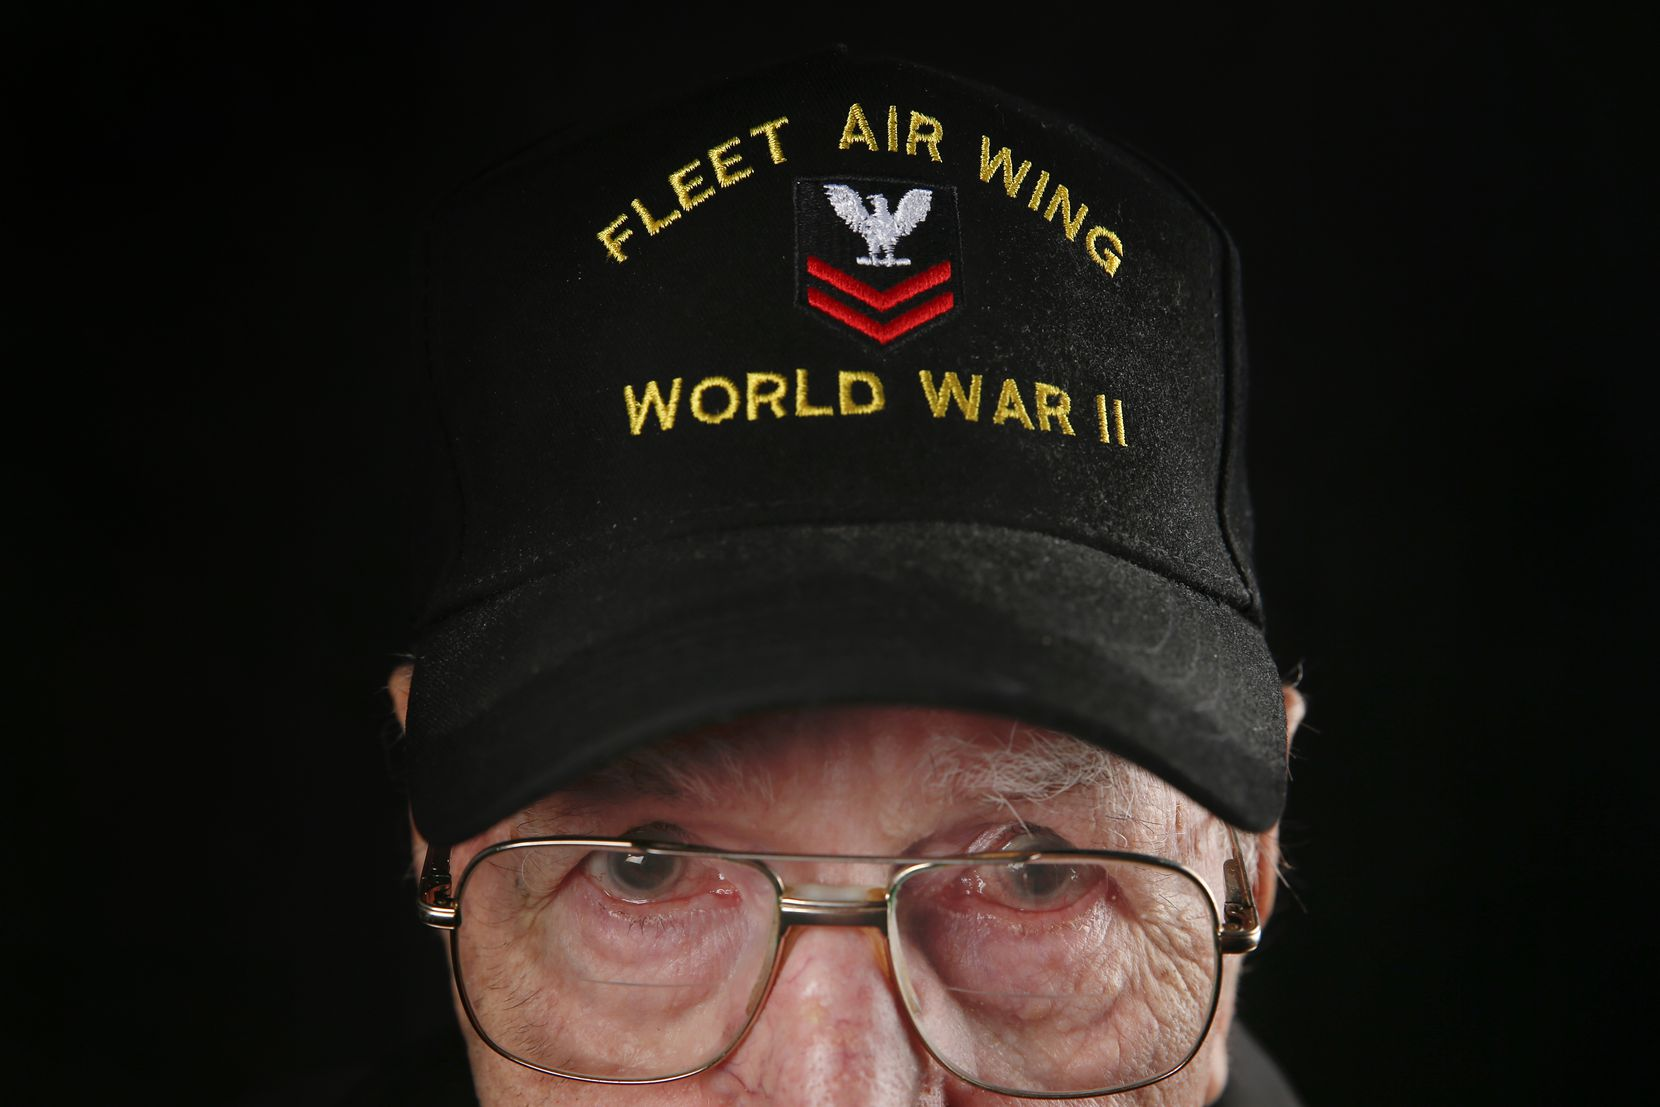 James Kenneth Fling, 97, of Gun Barrel City, Texas, a colonel who served in the World War II AM2/C Fleet Air Wing, is photographed during the Wings Over Dallas Airshow on Saturday, Oct. 26, 2019 in Dallas.